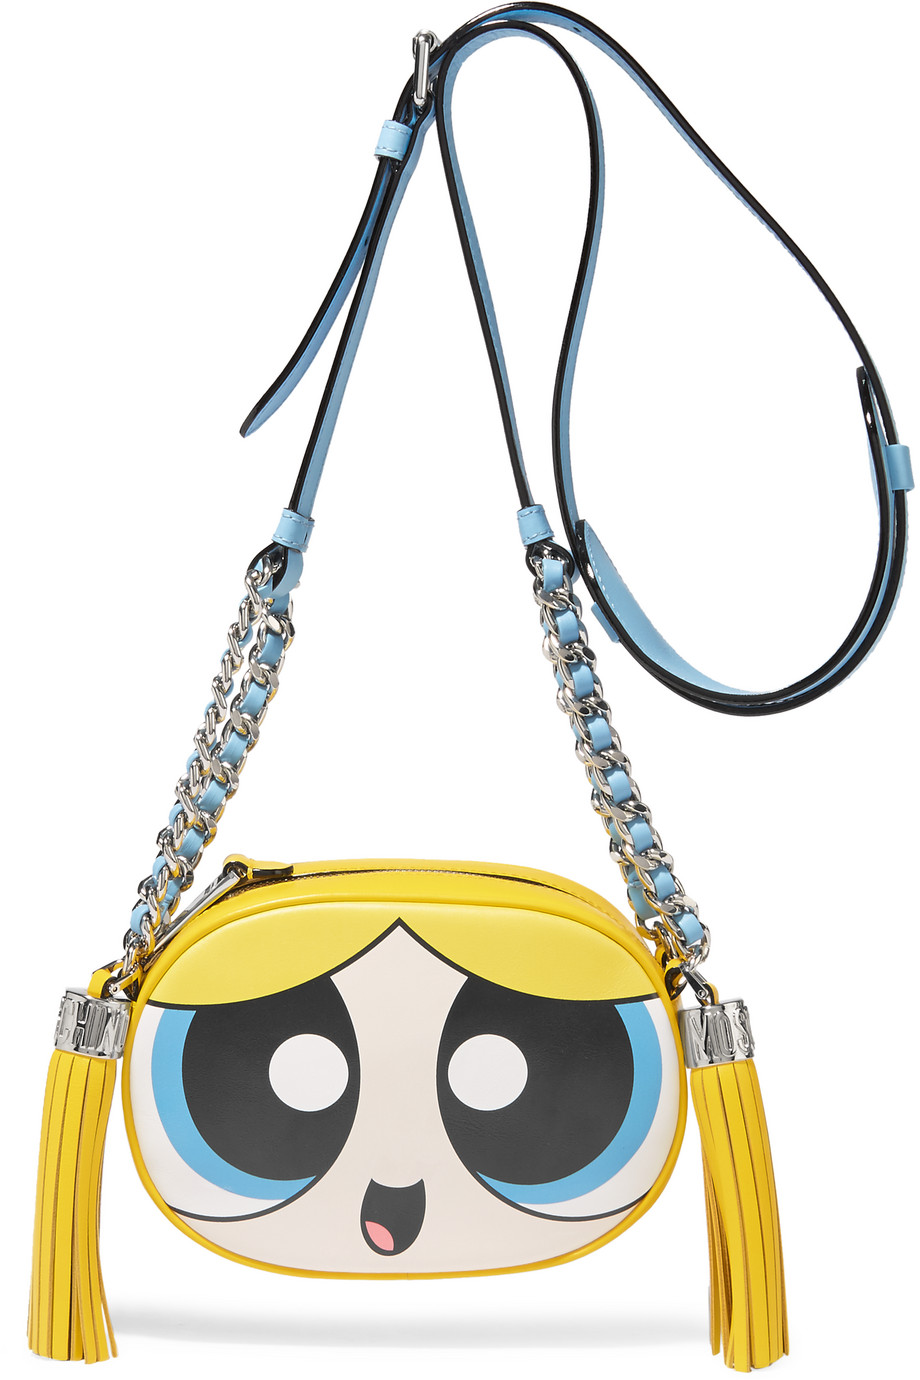 Moschino Tasseled Leather Shoulder Bag, Sky Blue/Yellow, Women's